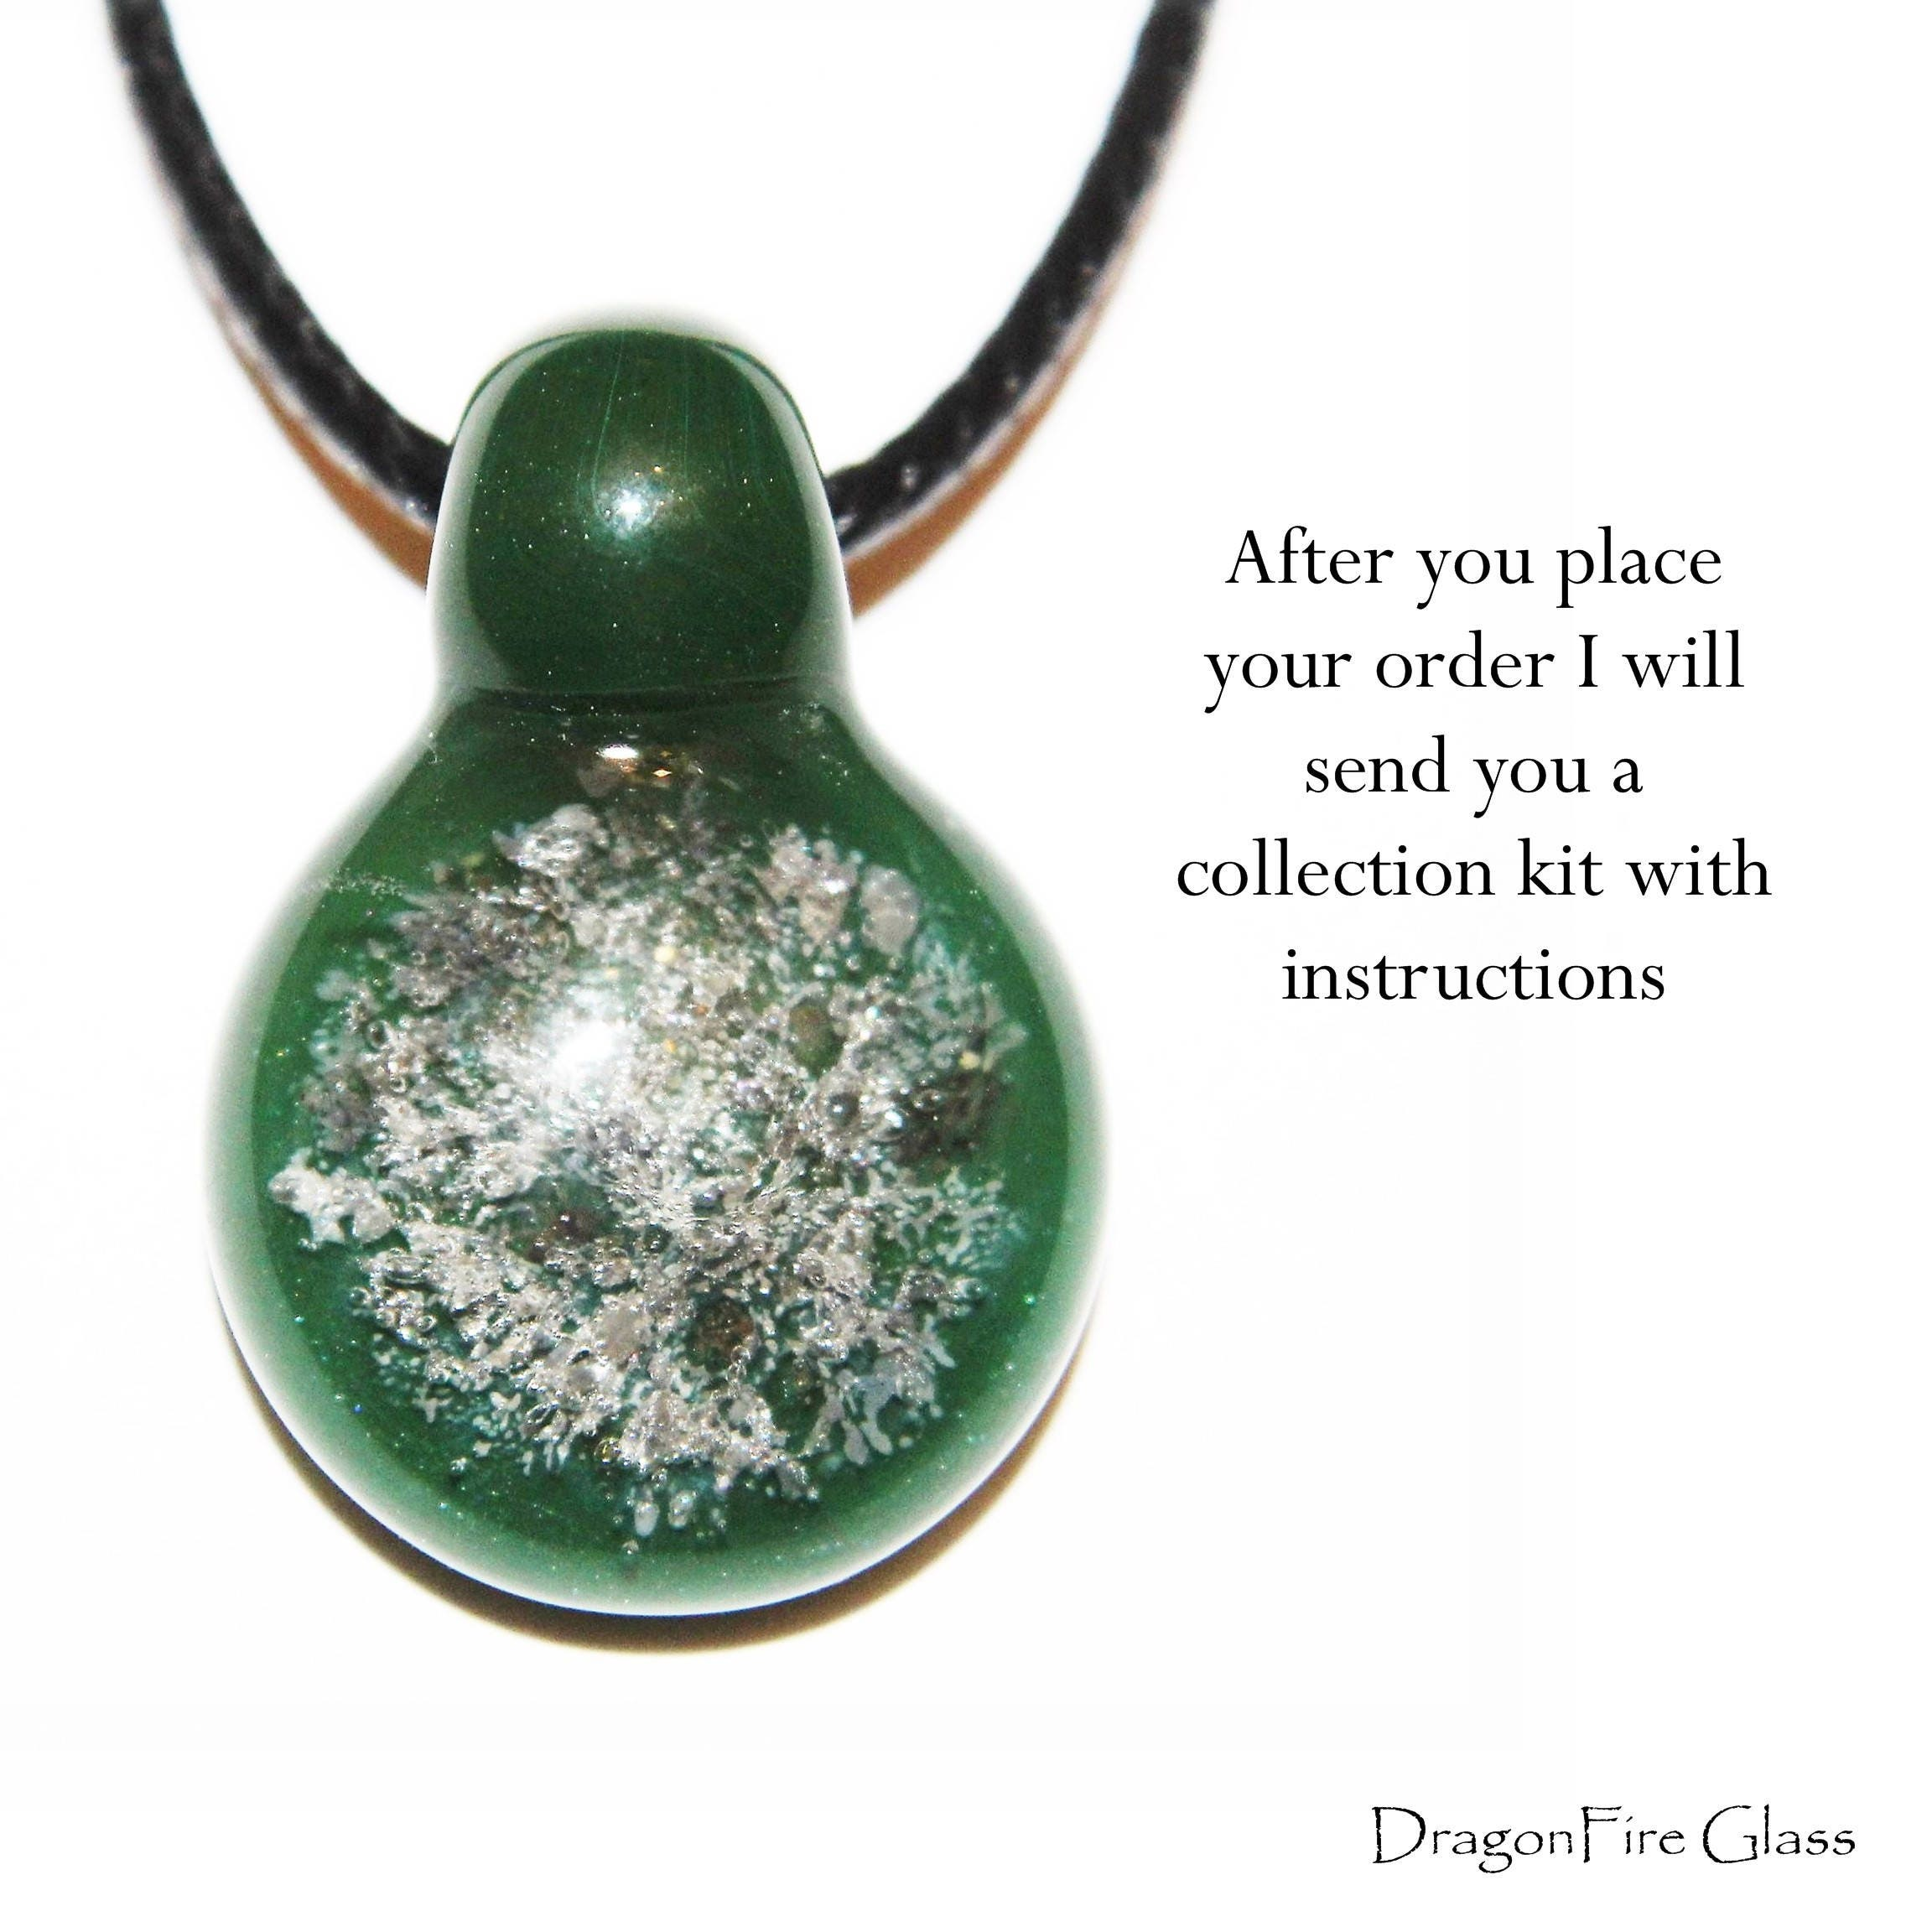 Ashes into jewelry glass cremation pendant cremation jewelry ashes into jewelry glass cremation pendant cremation jewelry handmade urn necklace cremation necklace cremation urn pet memorial aloadofball Image collections